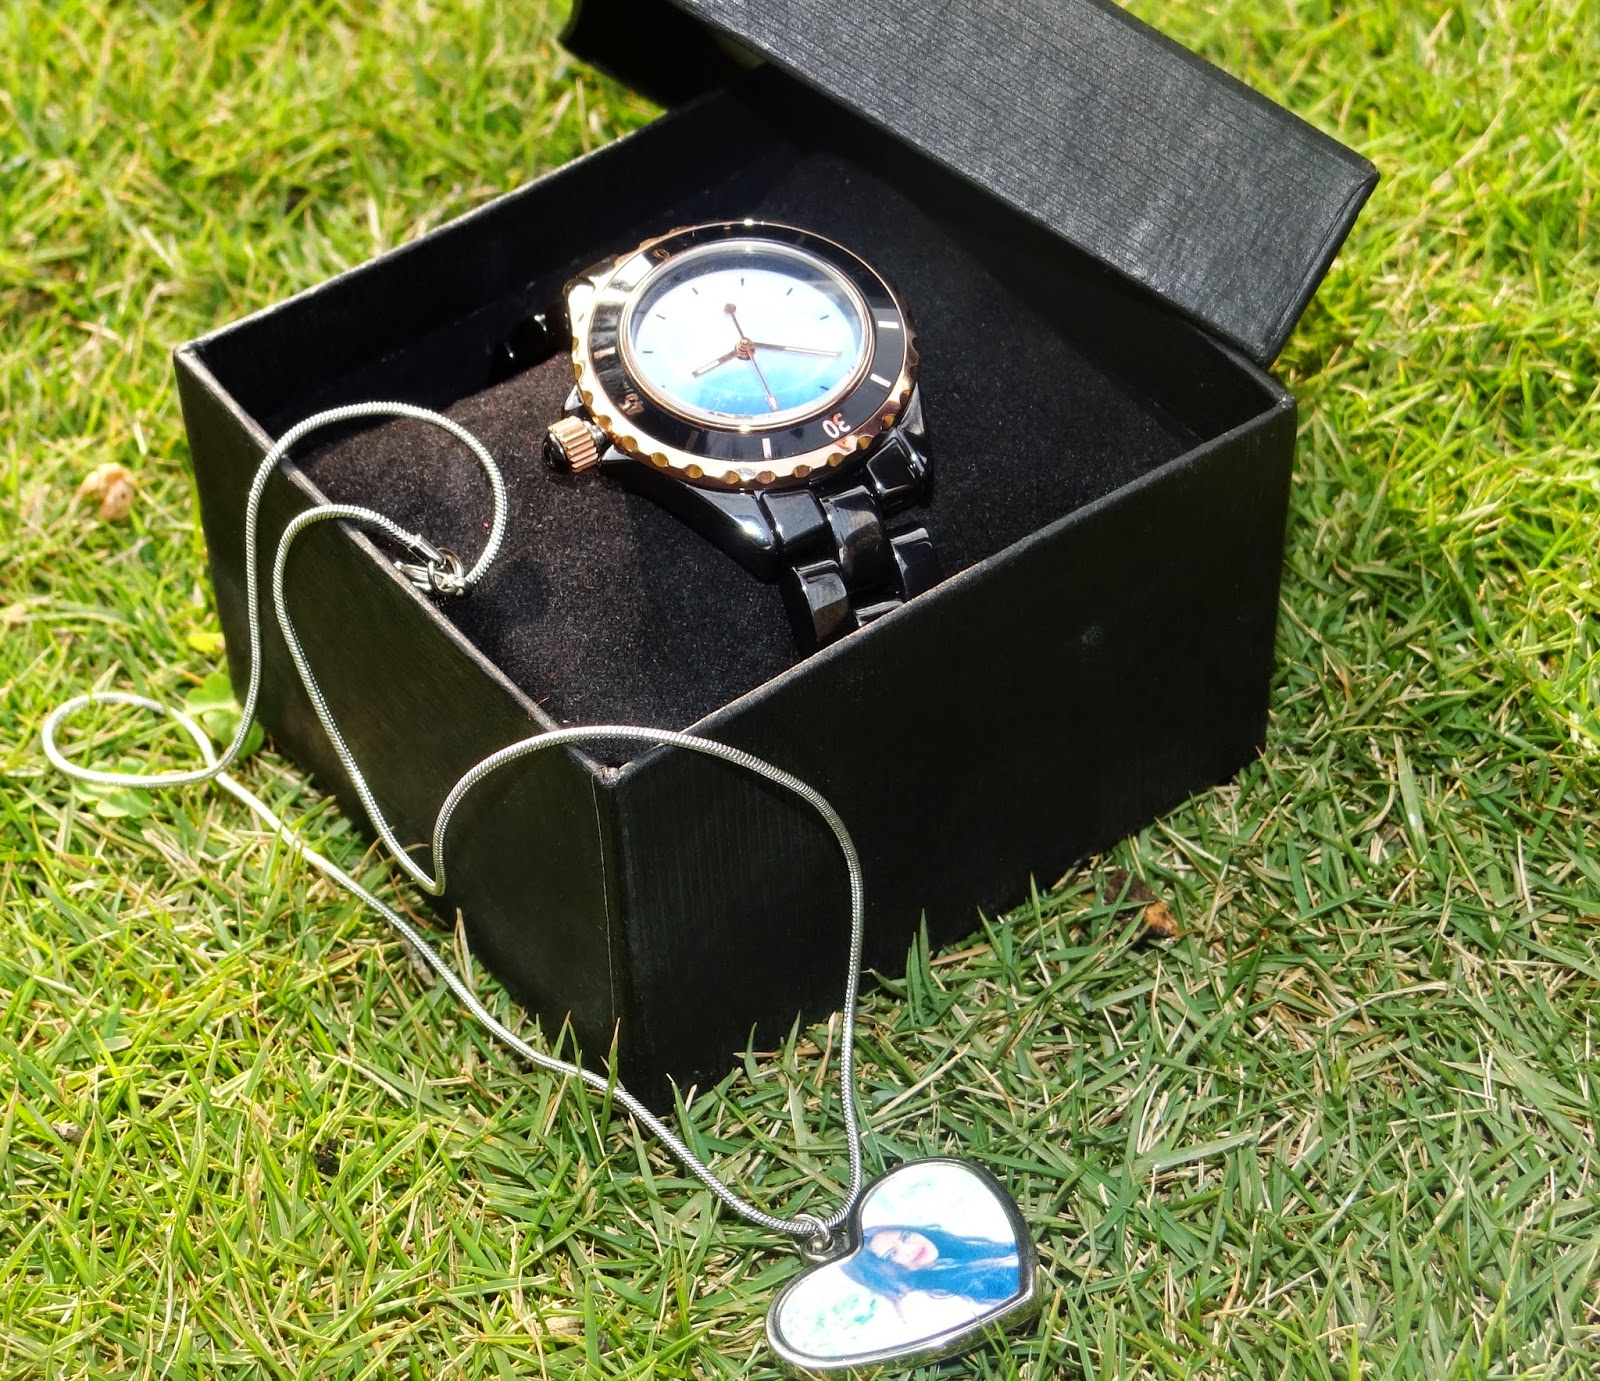 Personalized watch and necklace from Snapmade.com